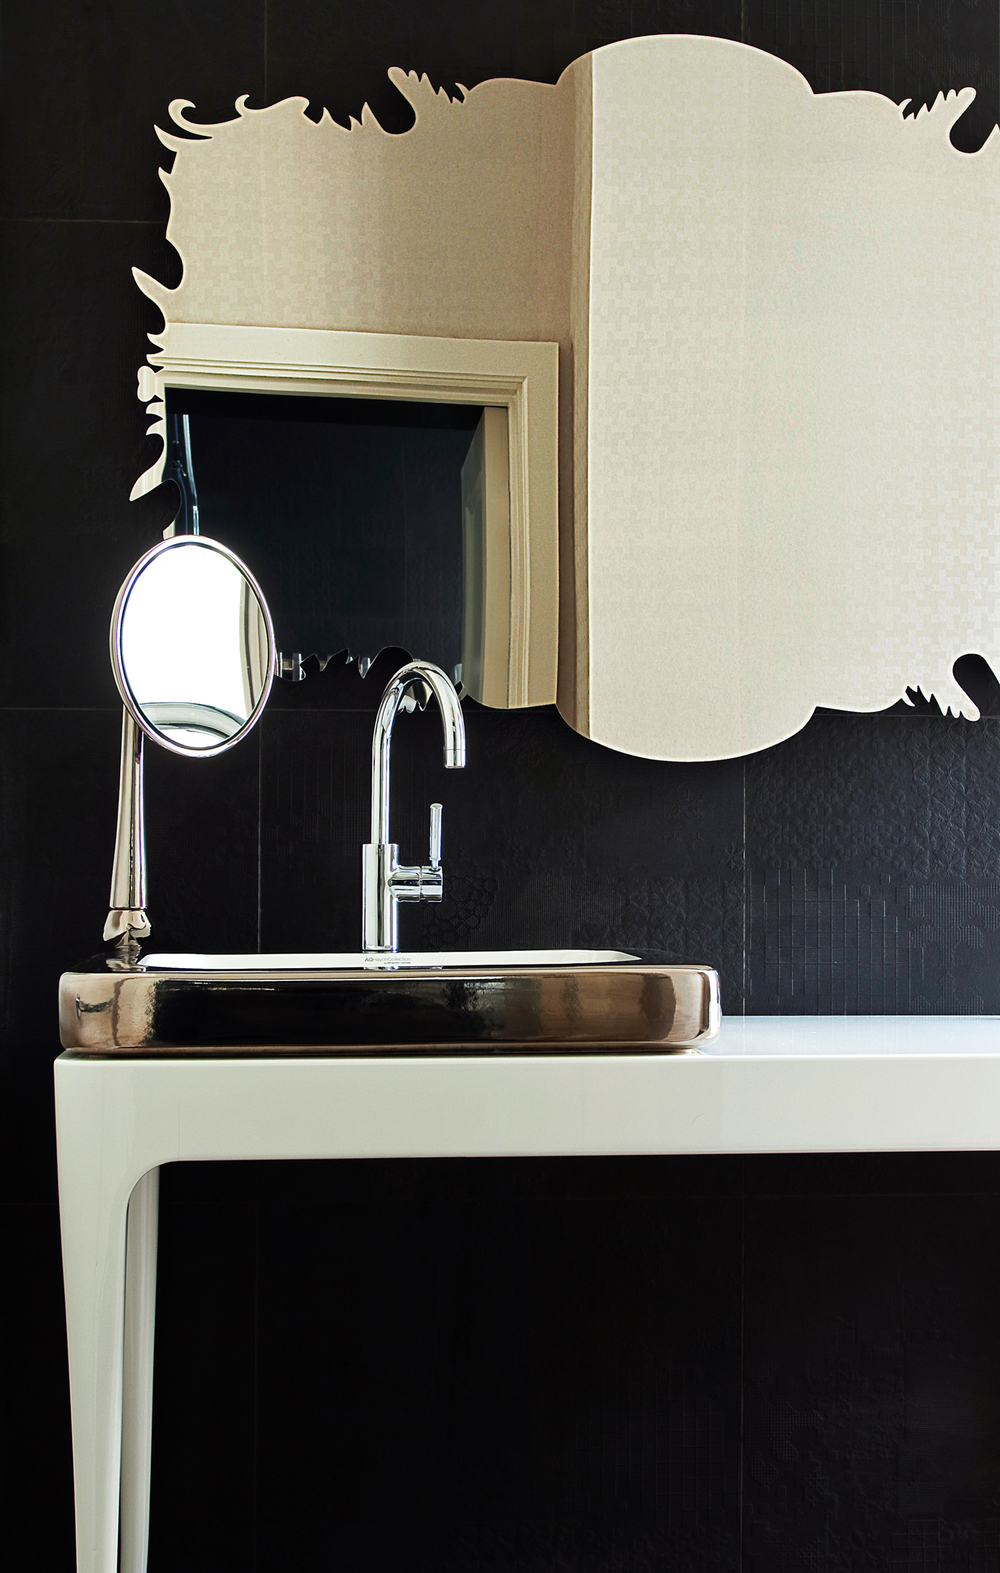 knof-design--hyde-park-townhouse-26.jpg